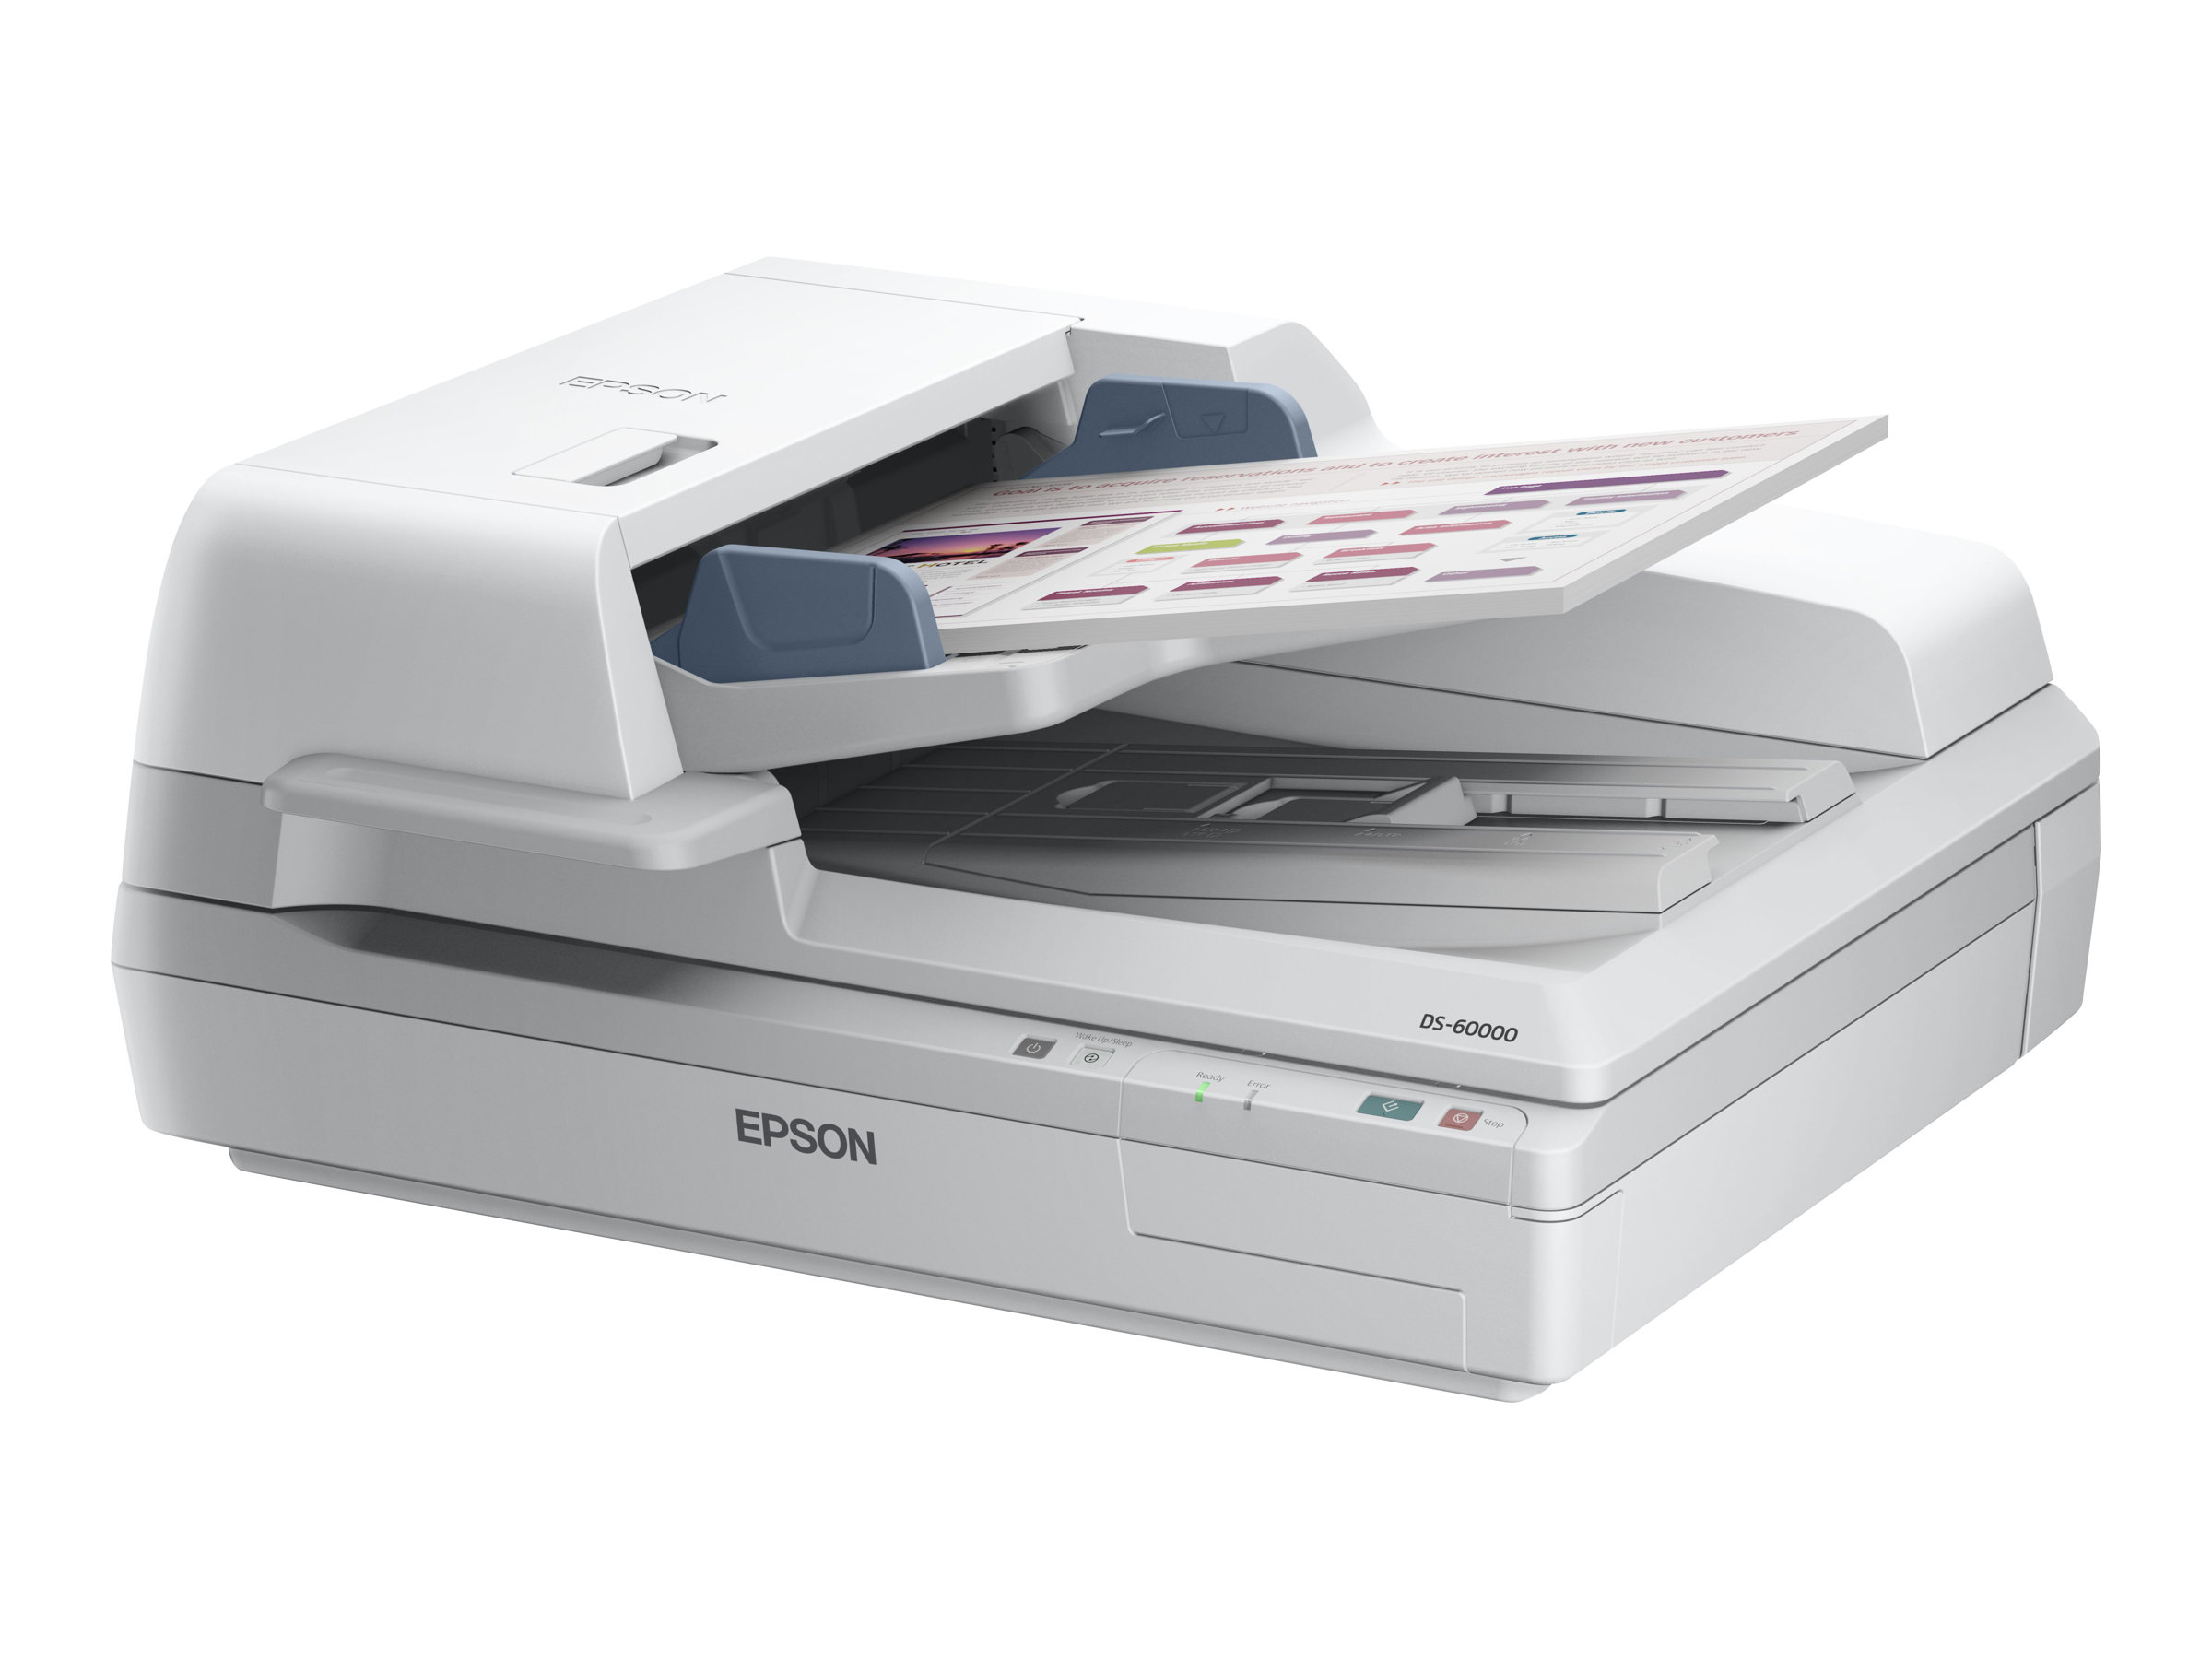 Epson WorkForce DS-60000 - scanner de documents A3 - 600 ppp x 600 ppp - 40ppm